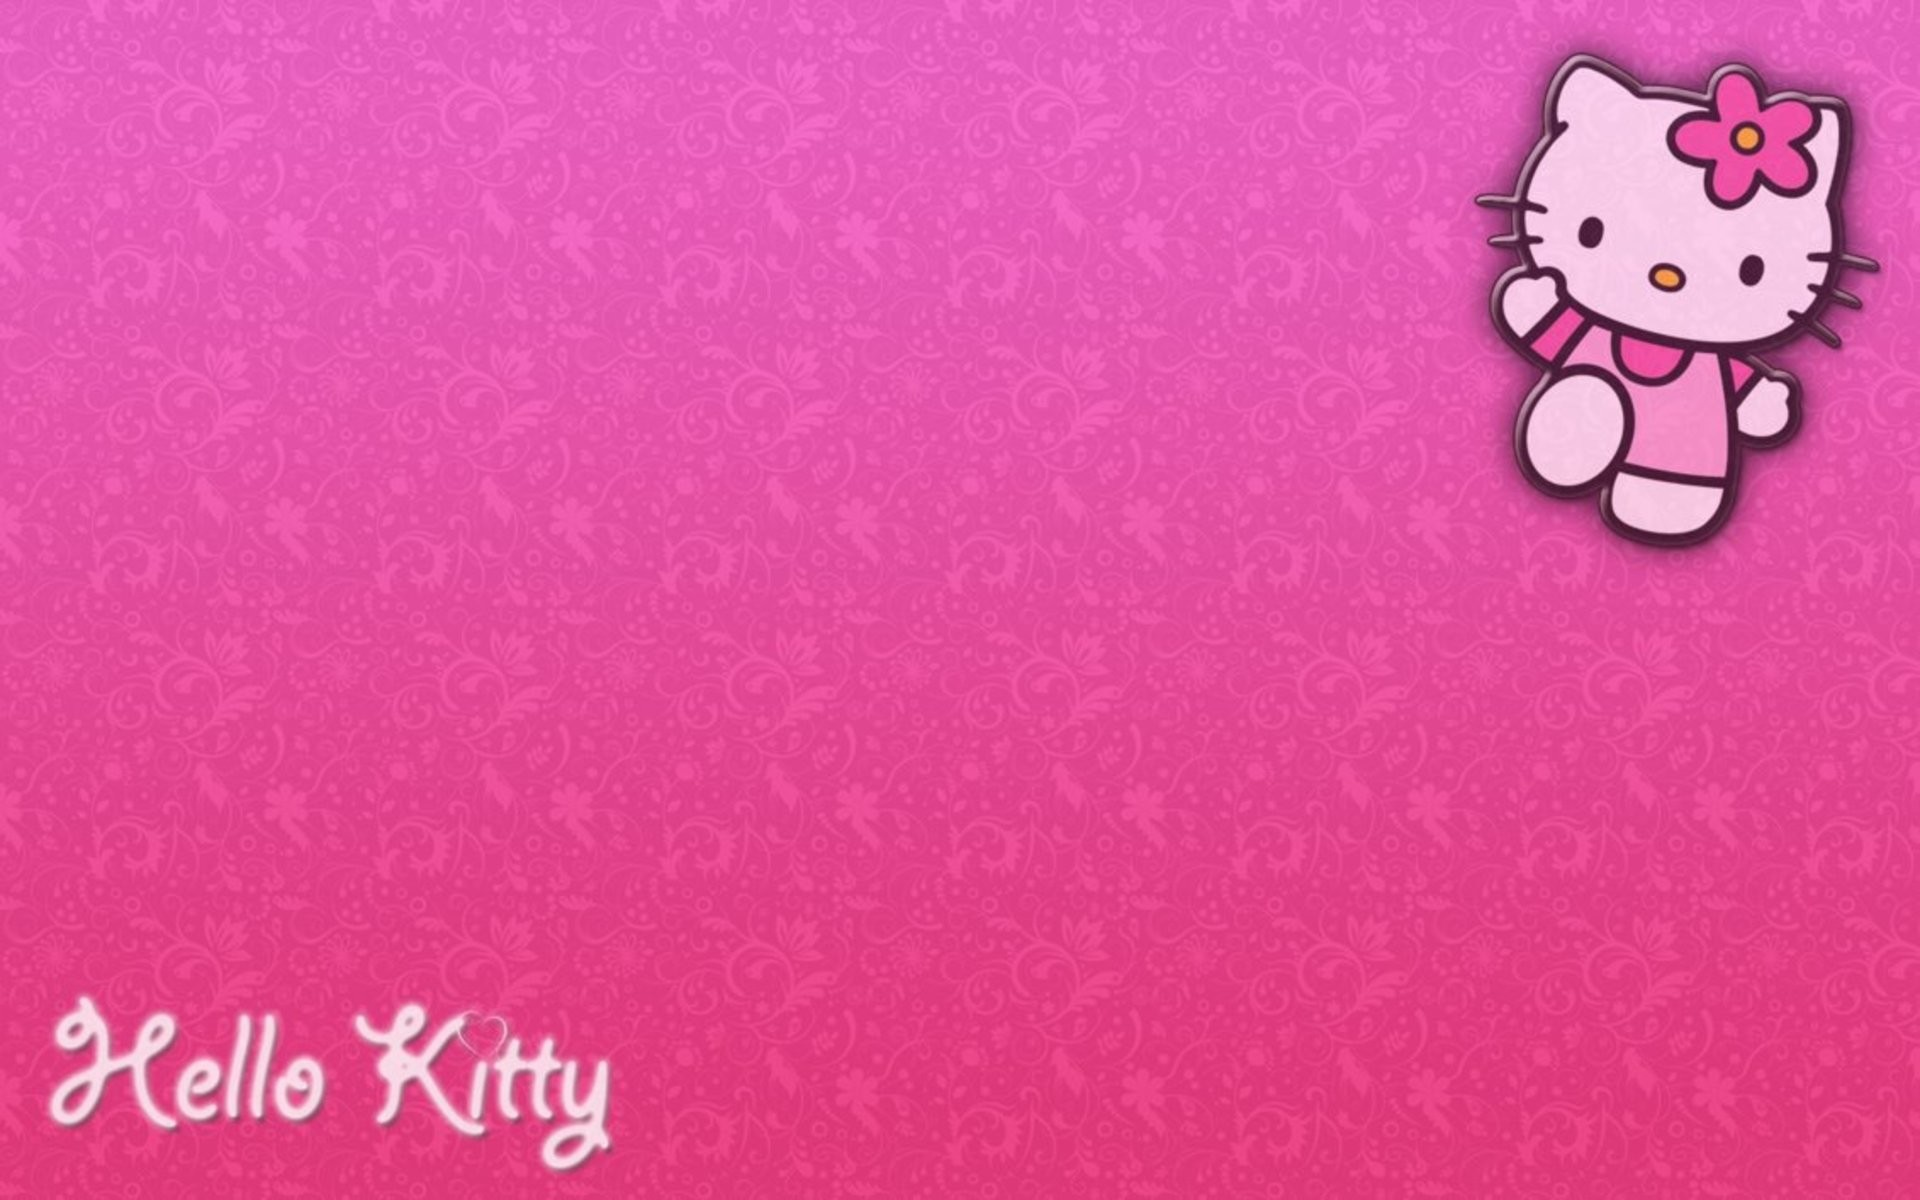 1920x1200 wallpaper.wiki-Hello-kitty-wallpaper-desktop-picture-pictures-